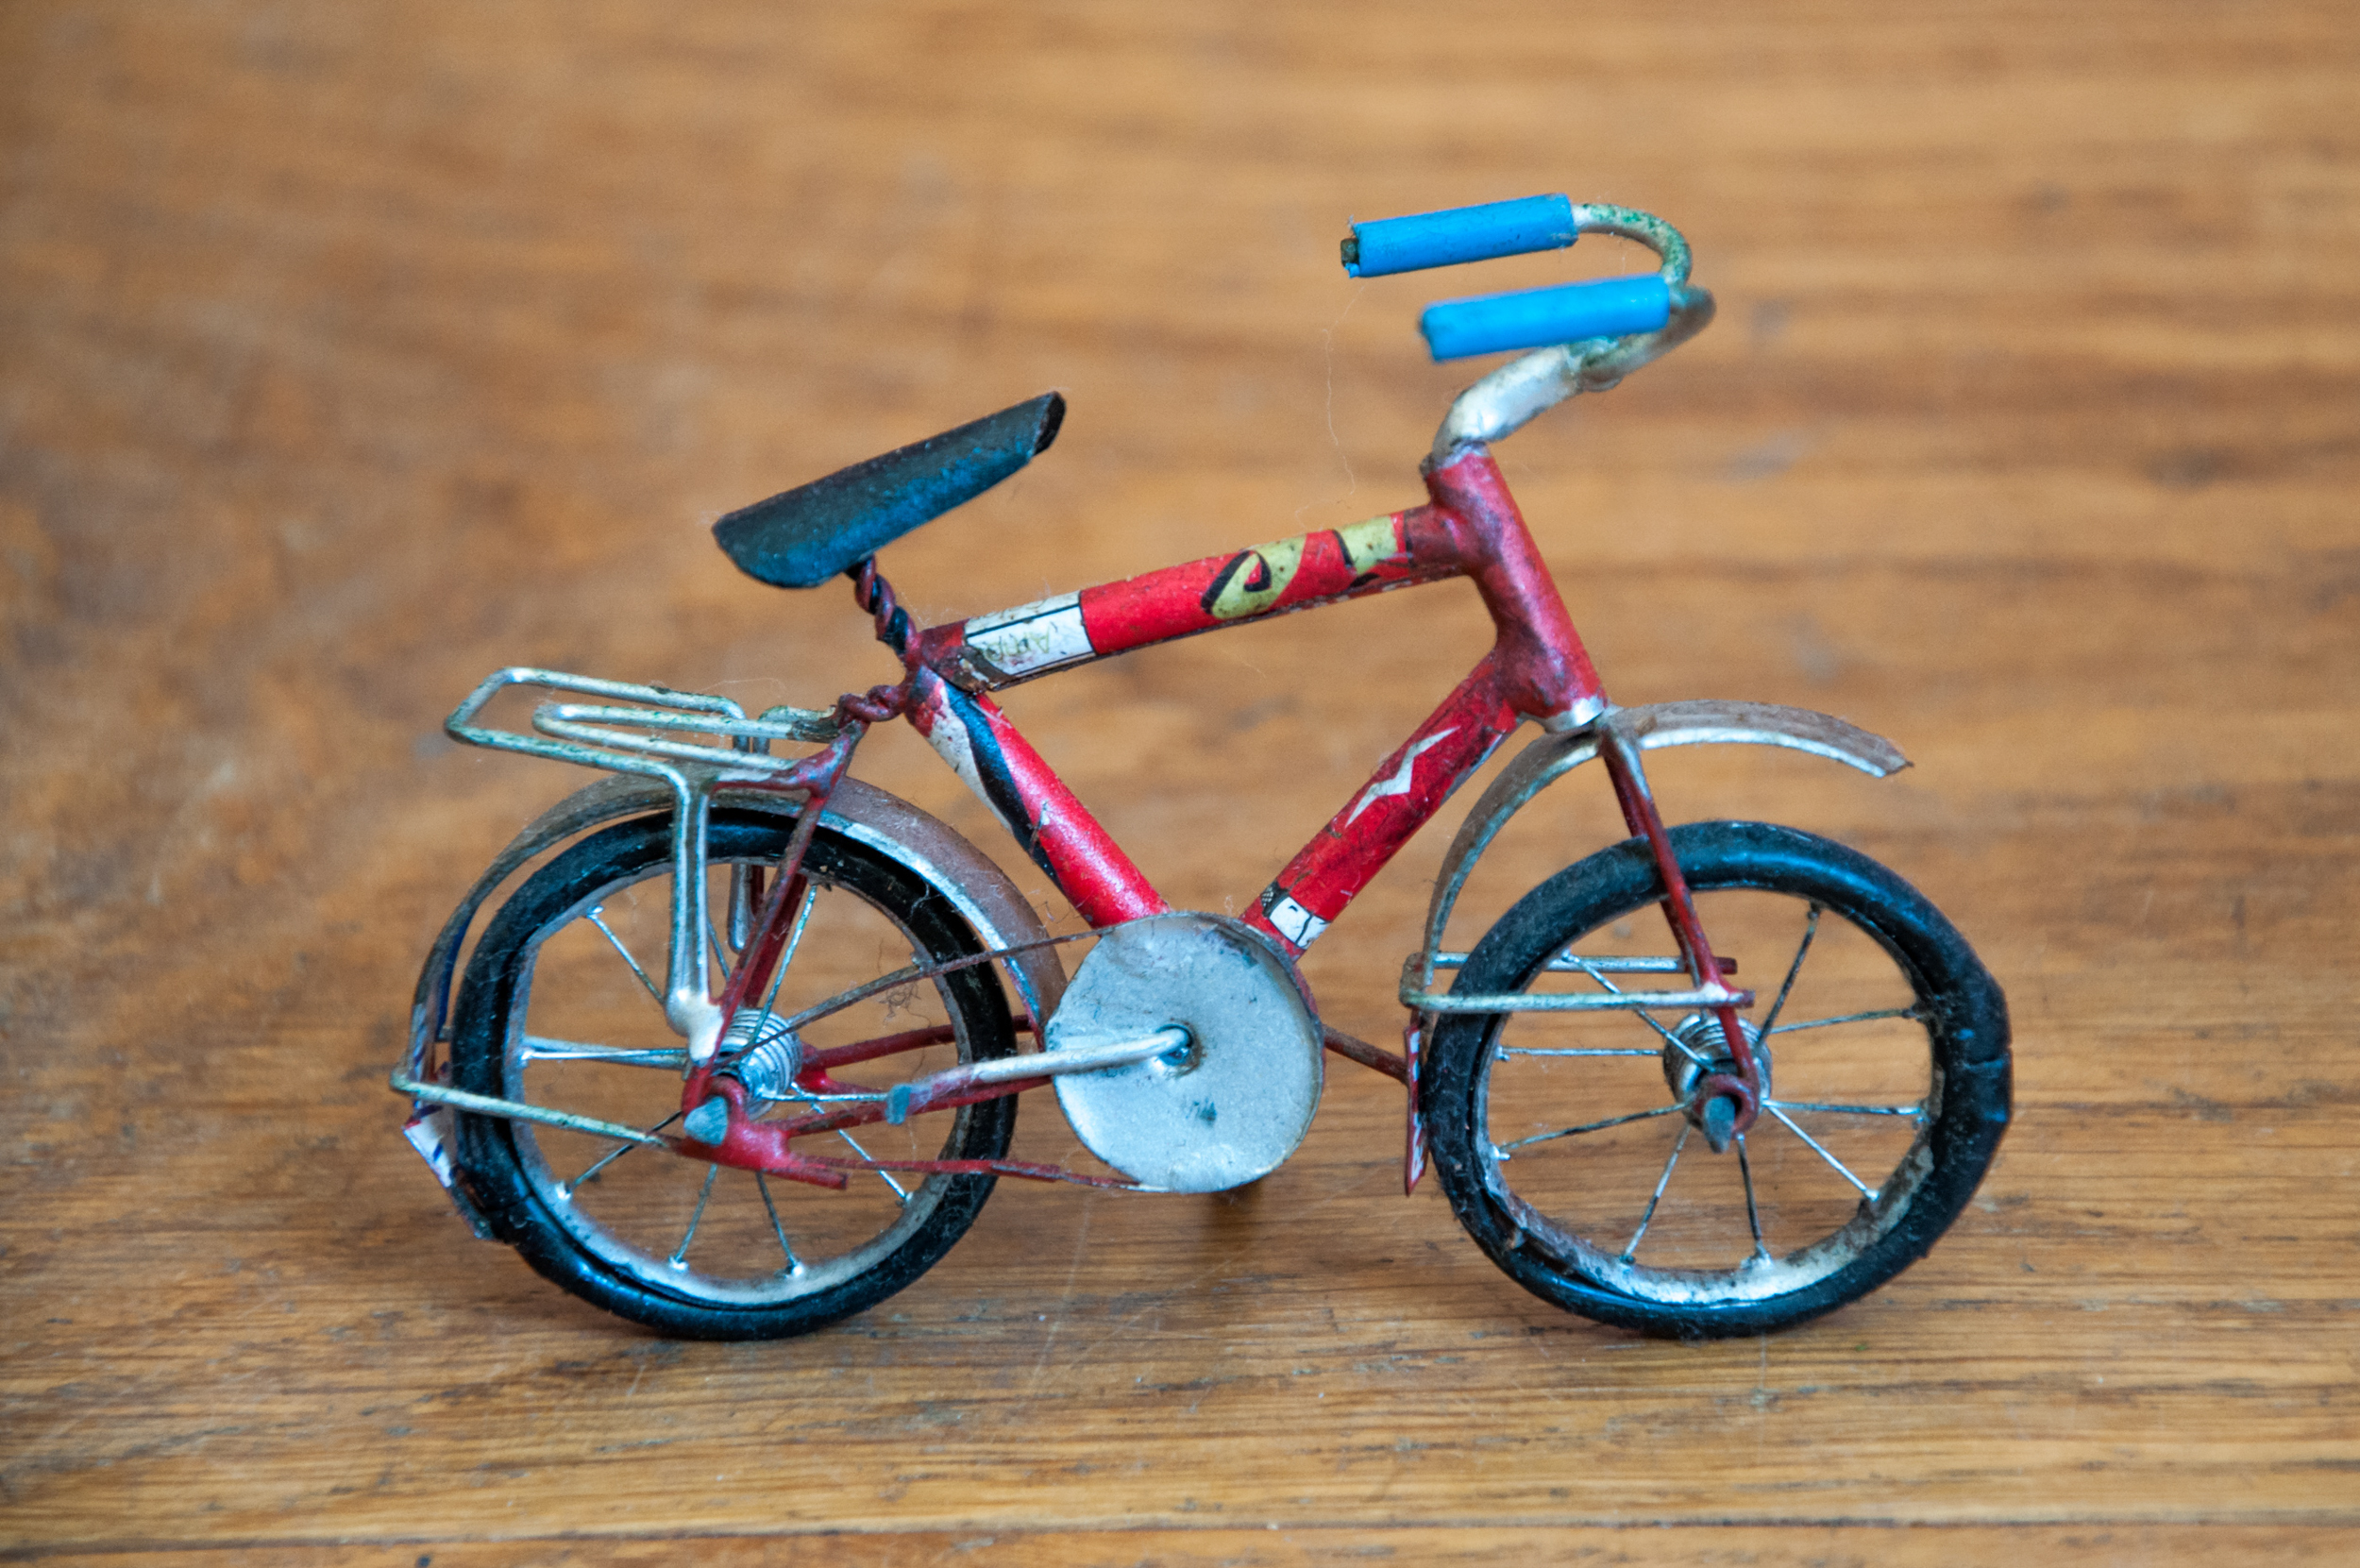 Craft bicycle made by aluminium photo